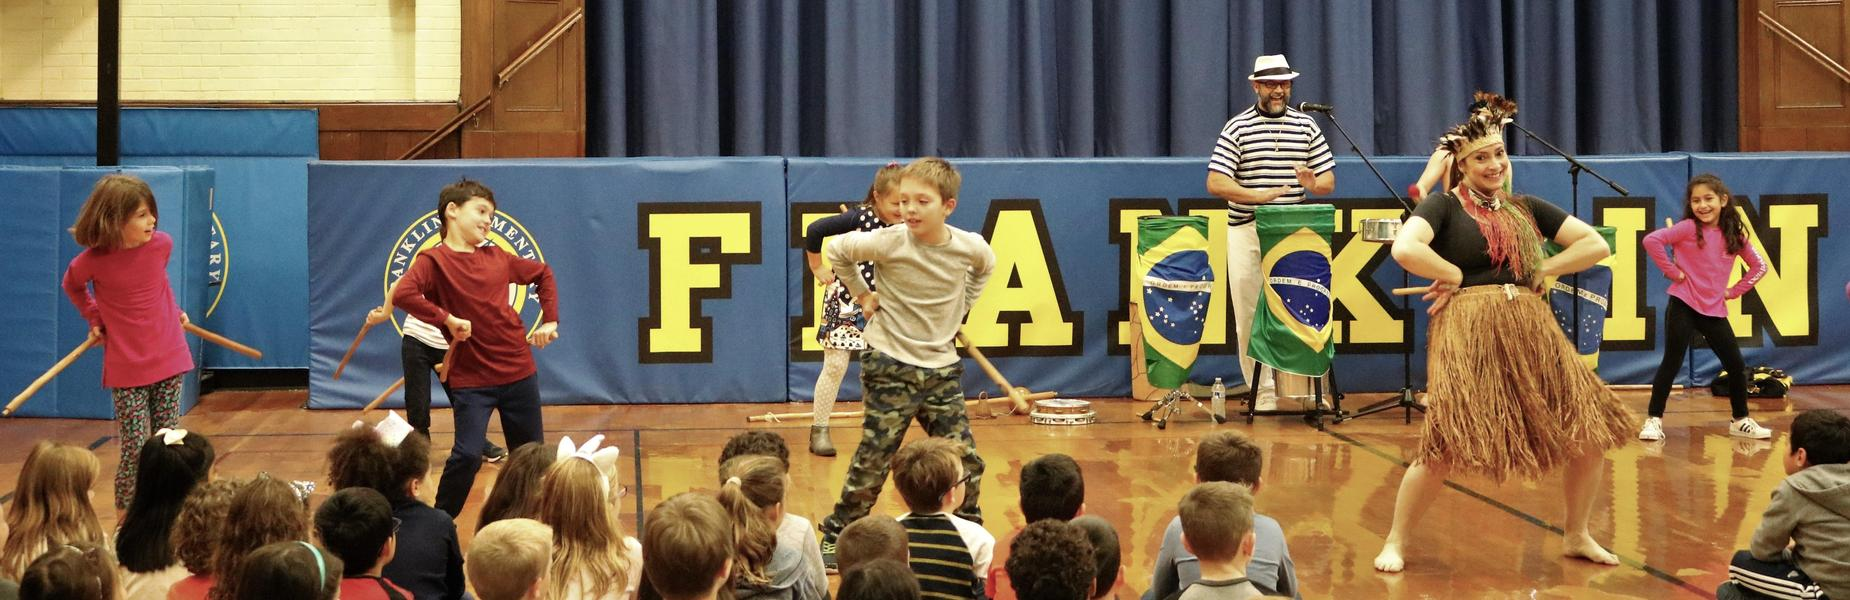 Franklin School students join in a lively performance by Ginga Brasileira on Nov. 19 as students explore the history, language and culture of Brazil through music and dance.  The dancers enlisted students in performing the Maculele, a stick dance from the Brazilian sugar cane plantations, while showcasing other dances including the Capoeira which combines dance, martial arts, and music. The event is part of a cultural arts program provided by the school's Parent -Teacher Organization.